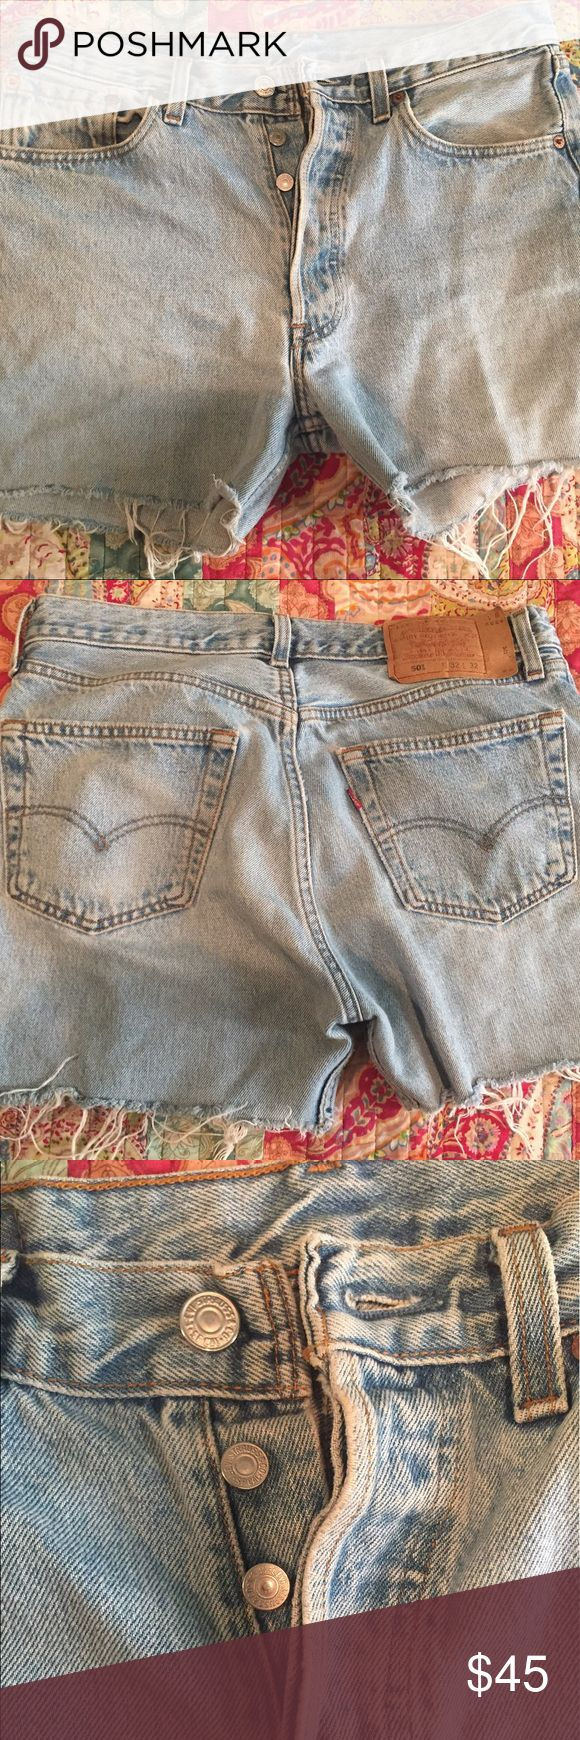 """⚡️FLASH SALE⚡️ Vintage Levi's High Waisted Shorts Vintage Levi's! ⚡️ High rise high waisted jean shorts. Authentic vintage Levi 501s. Size 32 but run small so check the vintage size chart in the pics! They fit like a size 6-8 and measure 16"""" across with no stretch. These are in excellent condition, barely worn.  Light wash. Back patch coming off a bit but I safety pinned them! Offers welcome and discounts available with a bundle. Levi's Shorts Jean Shorts"""